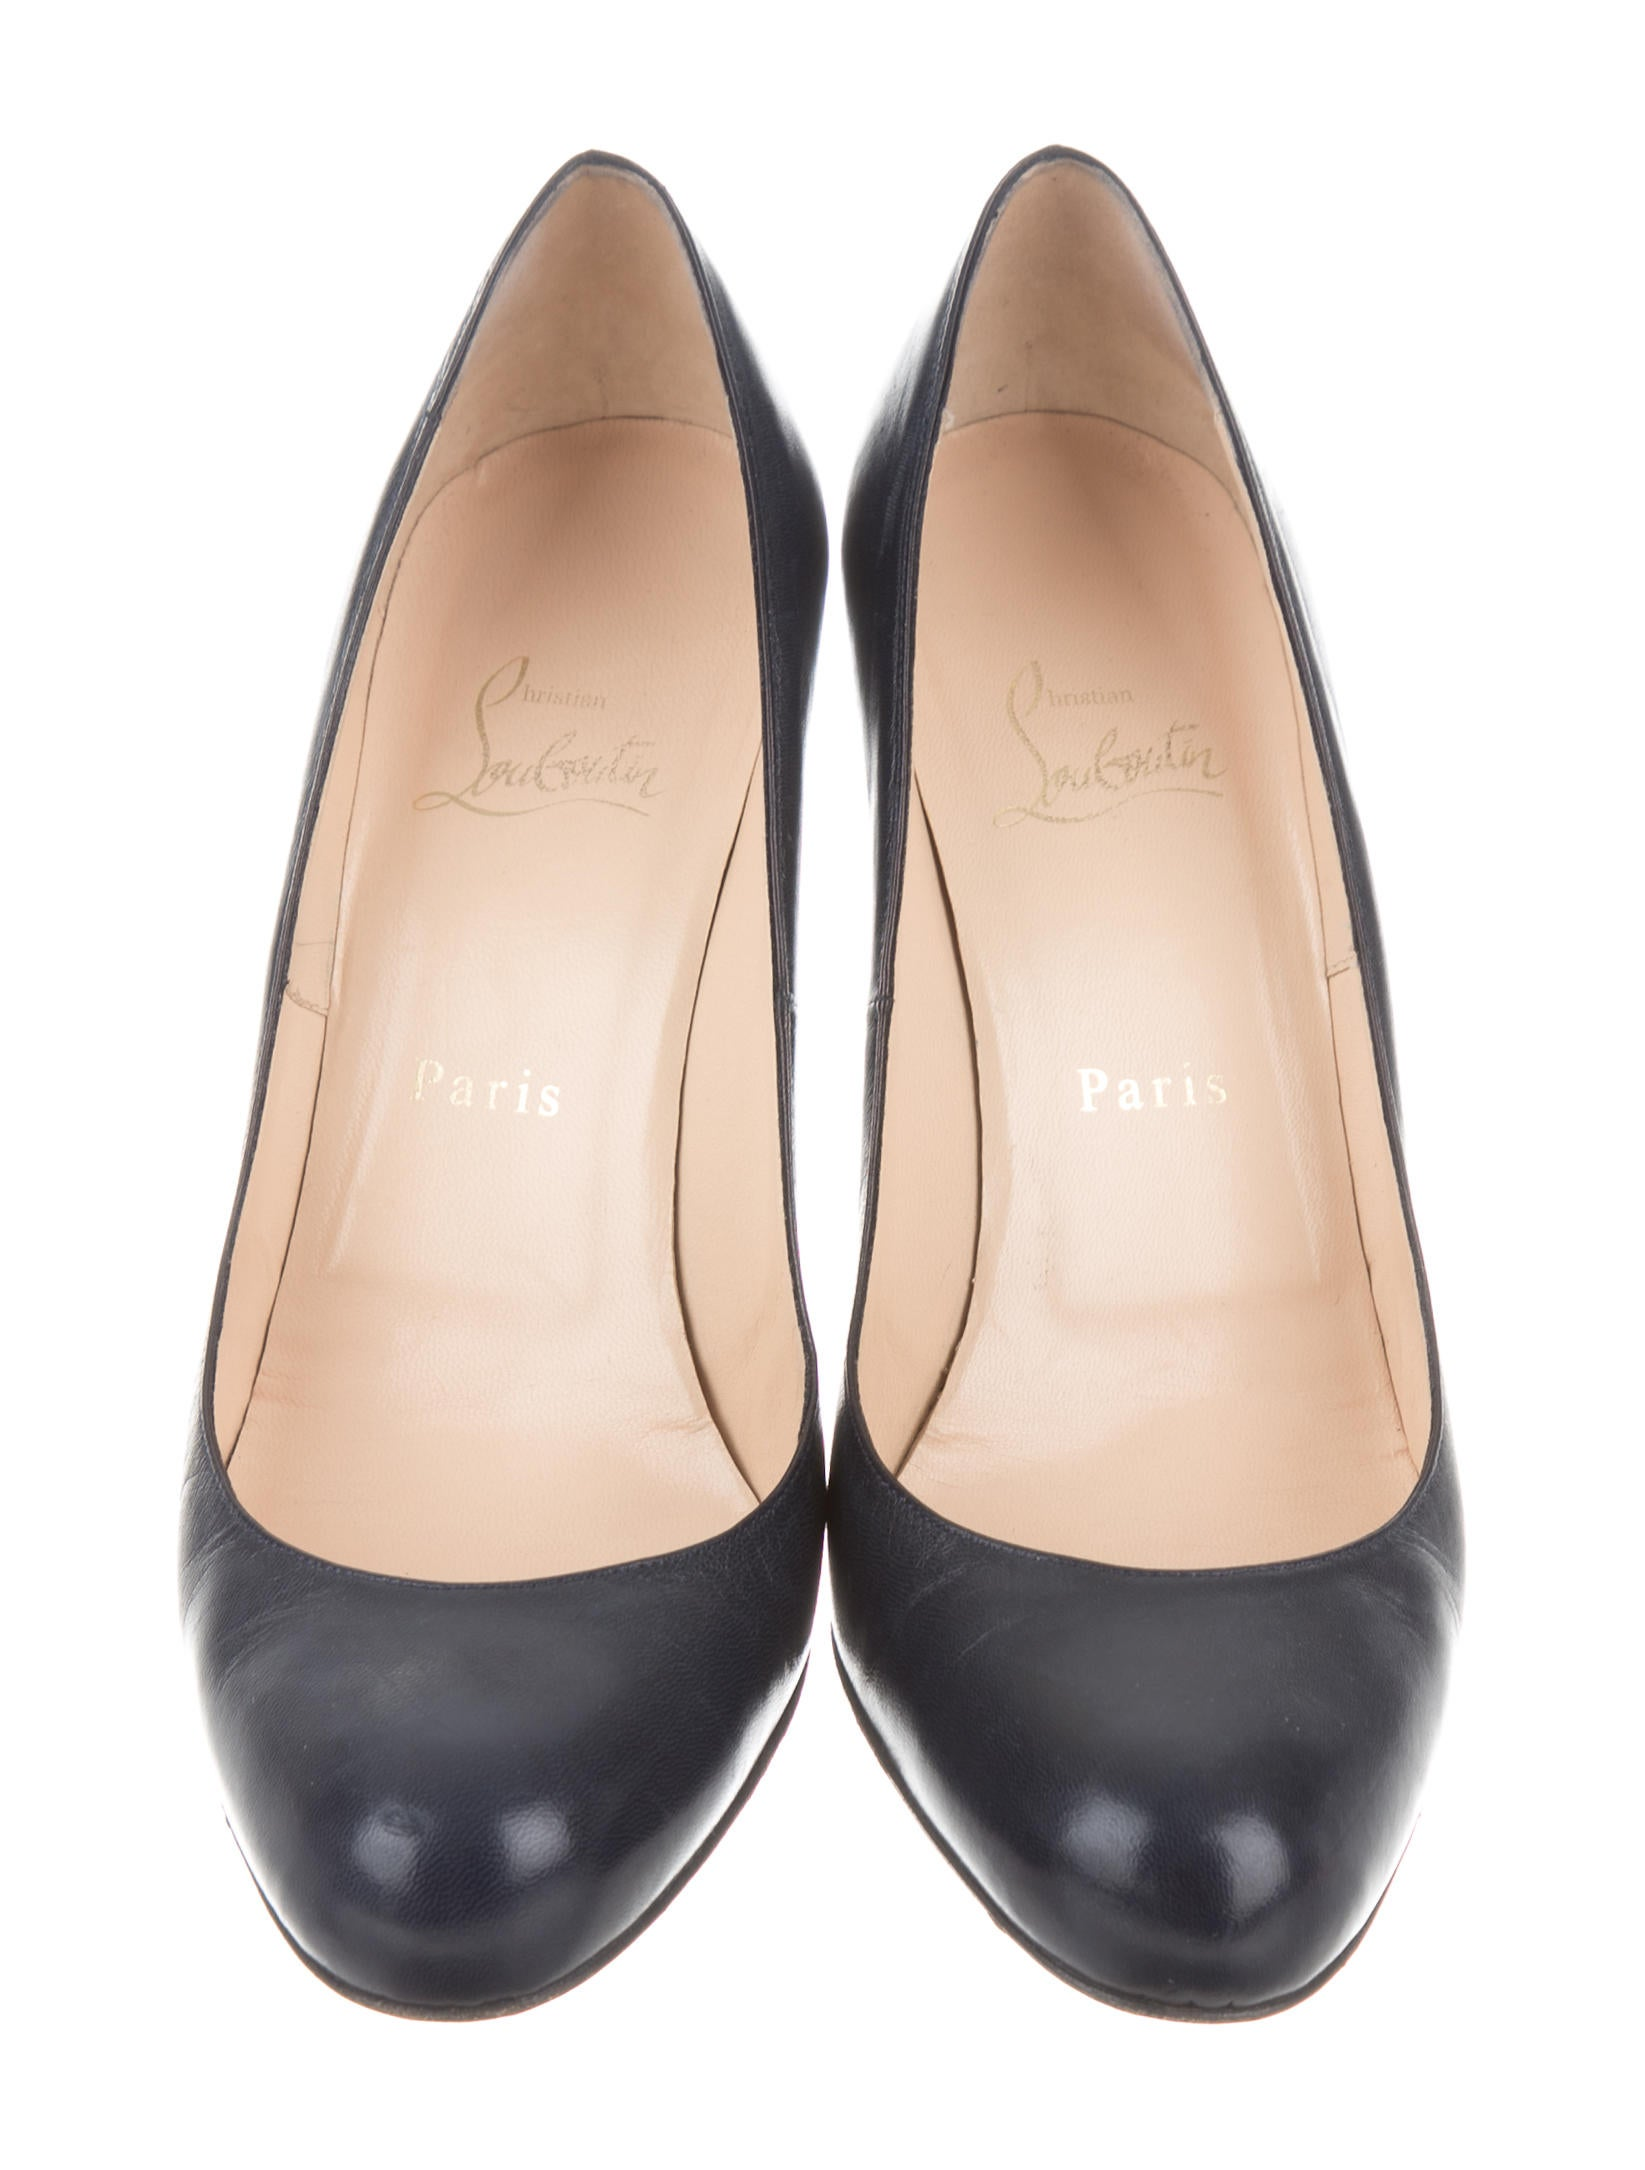 Christian Louboutin Leather Semi Pointed-Toe Flats buy cheap popular discount new styles TdvJKY